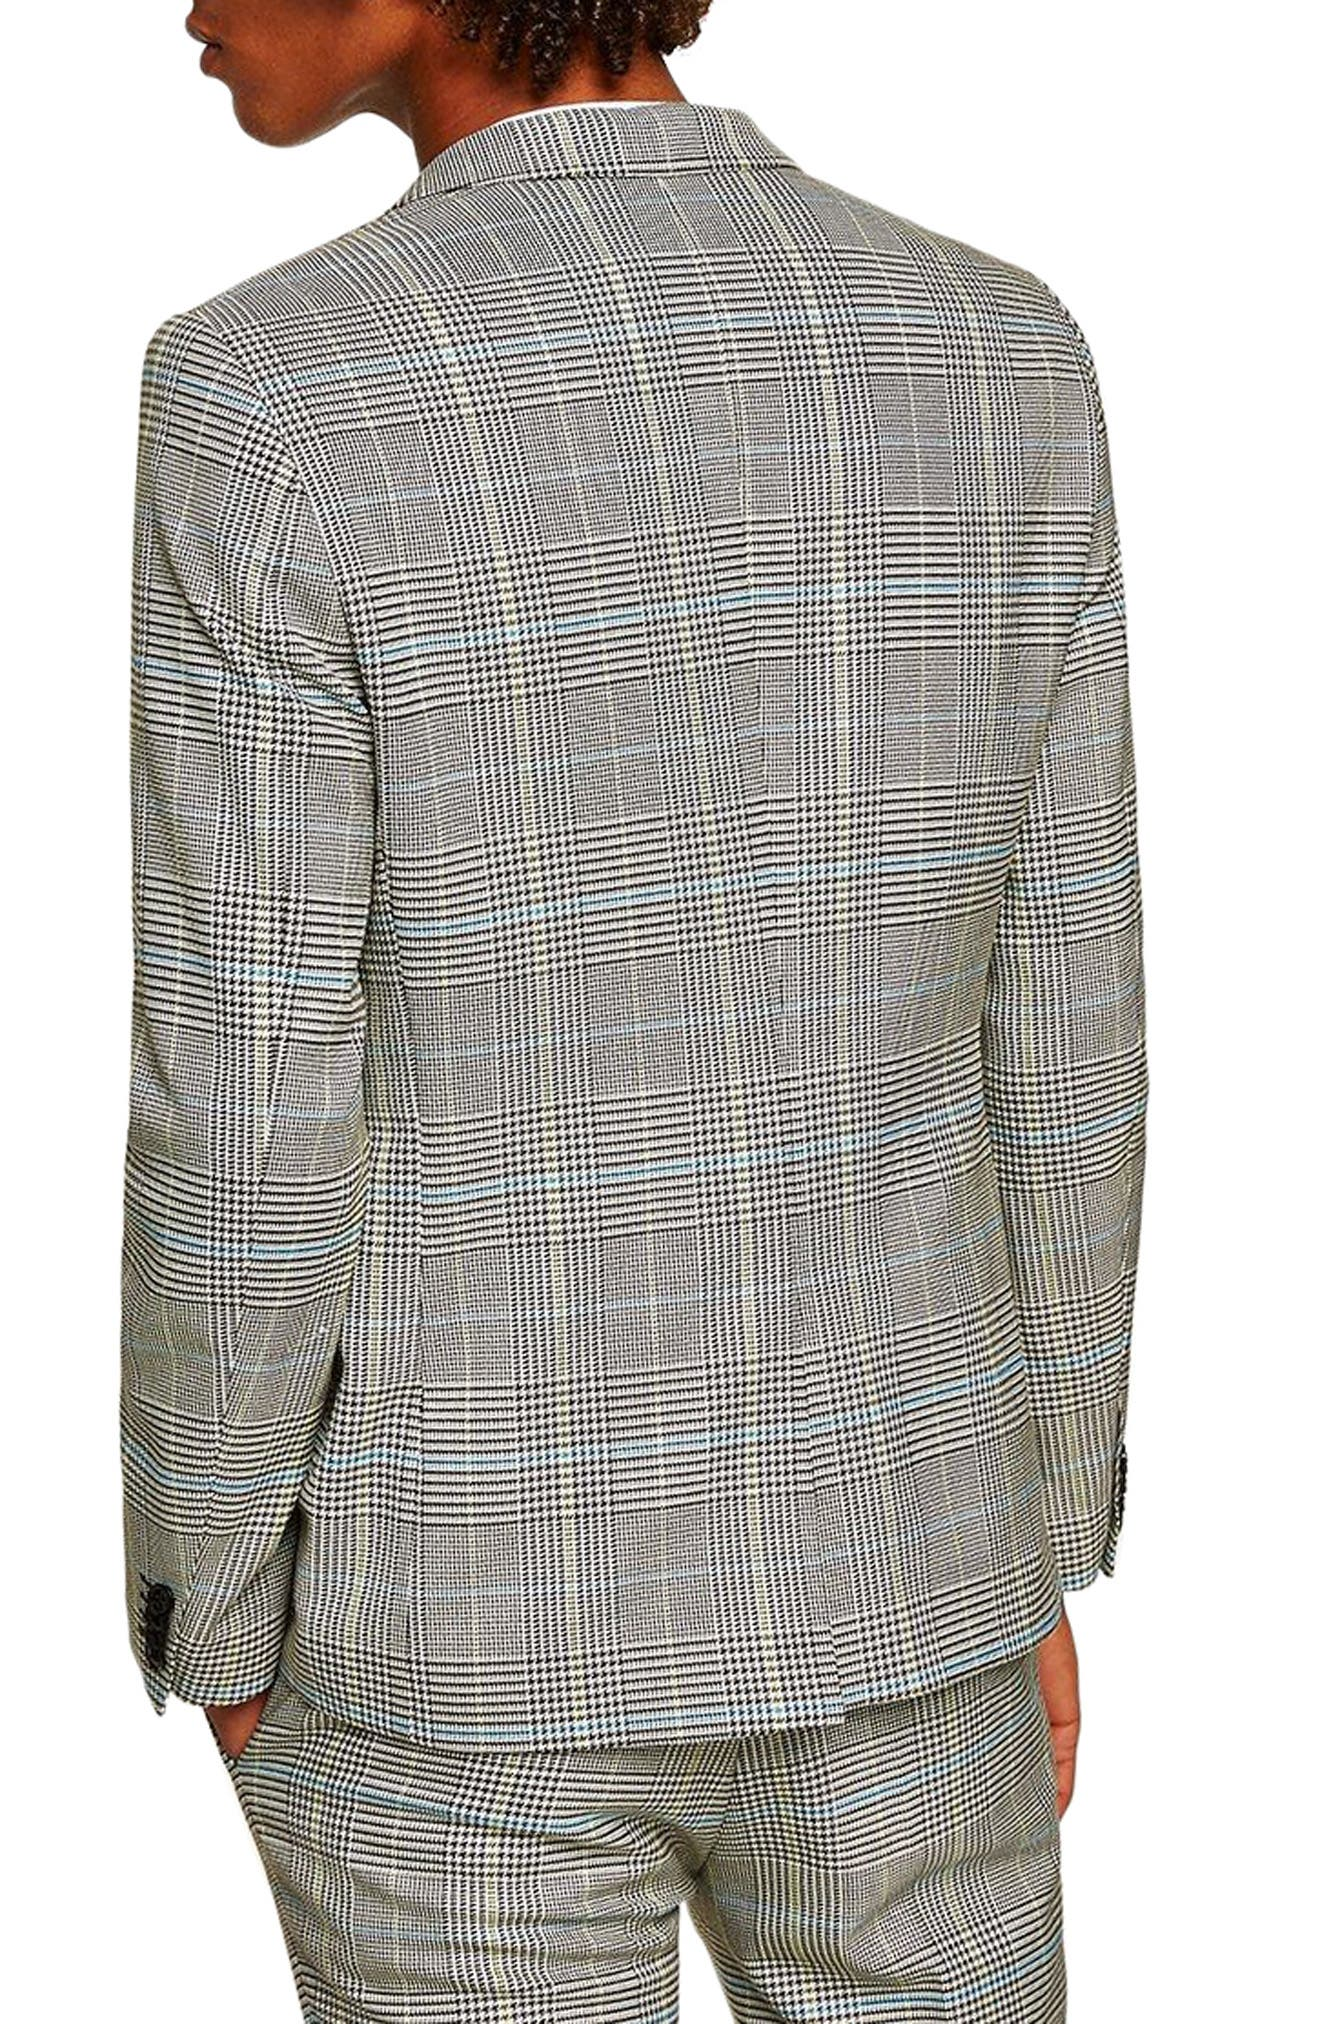 Skinny Fit Houndstooth Suit Jacket,                             Alternate thumbnail 2, color,                             GREY MULTI